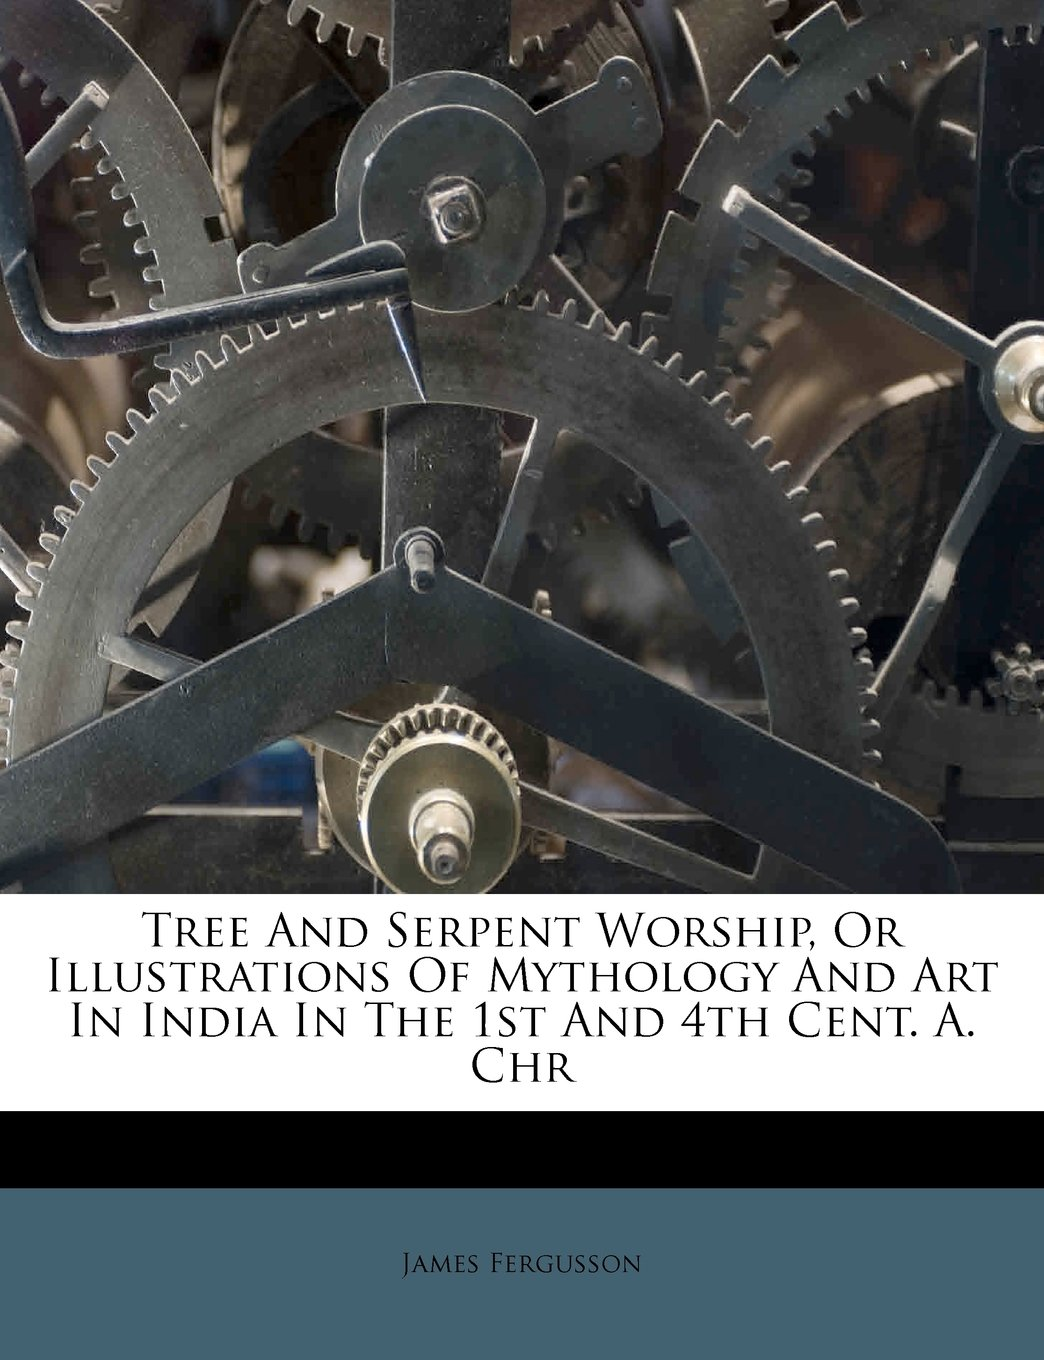 Read Online Tree And Serpent Worship, Or Illustrations Of Mythology And Art In India In The 1st And 4th Cent. A. Chr PDF